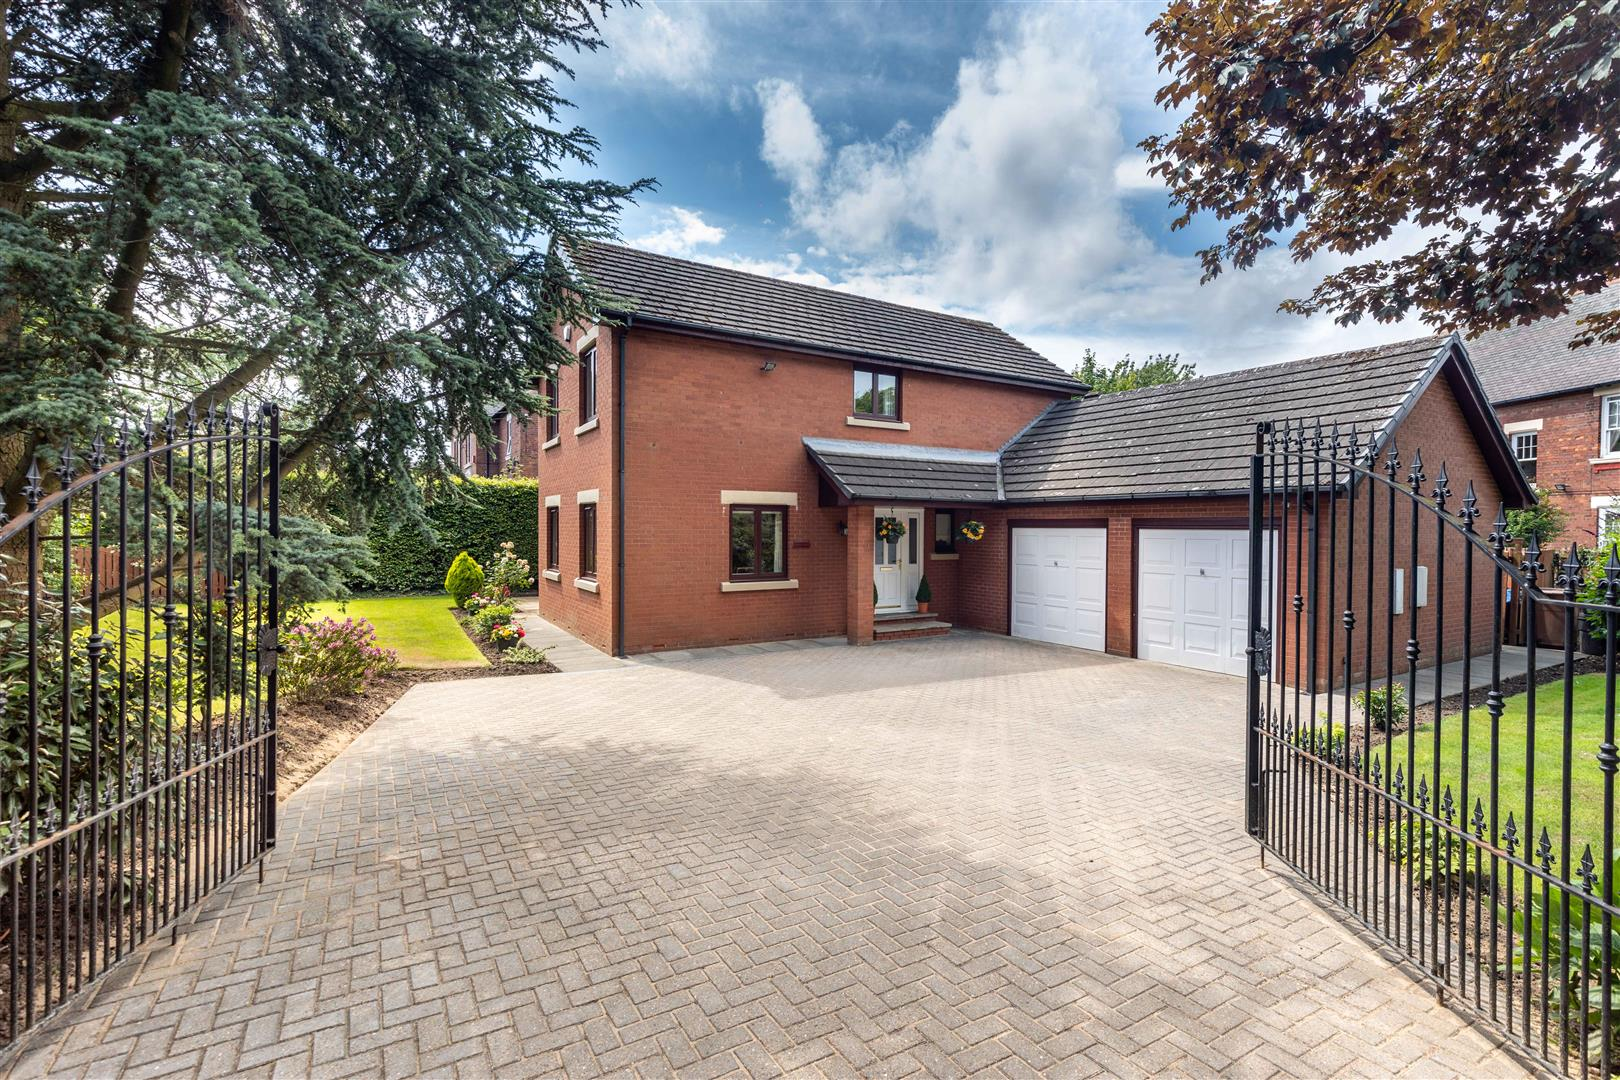 4 bed detached house for sale in Newcastle Upon Tyne, NE12 7ES  - Property Image 1